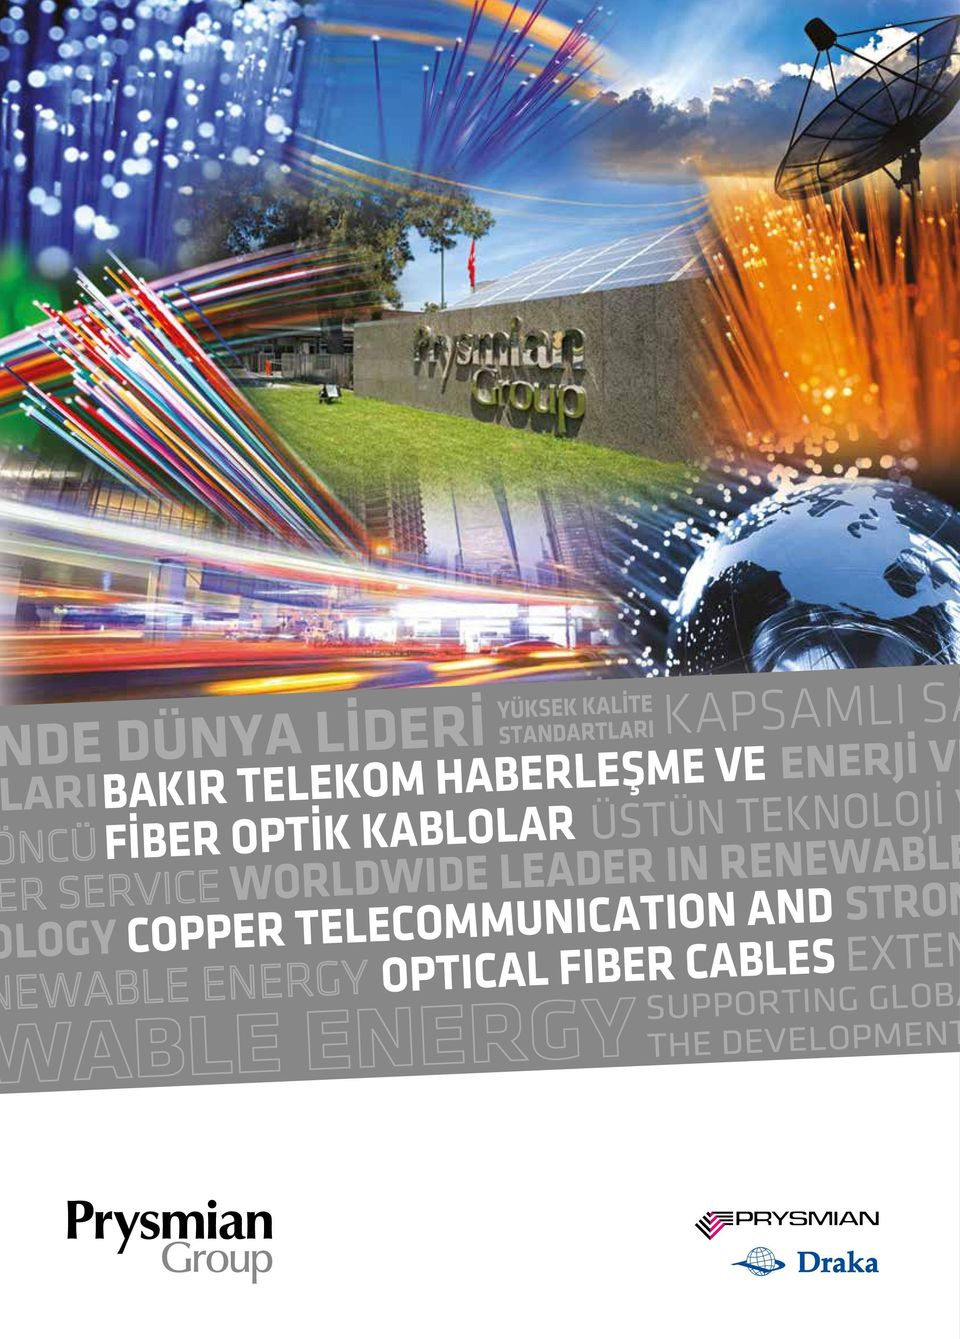 WORLDWIDE LEADER IN RENEWABLE LOGY COPPER TELECOMMUNICATION AND